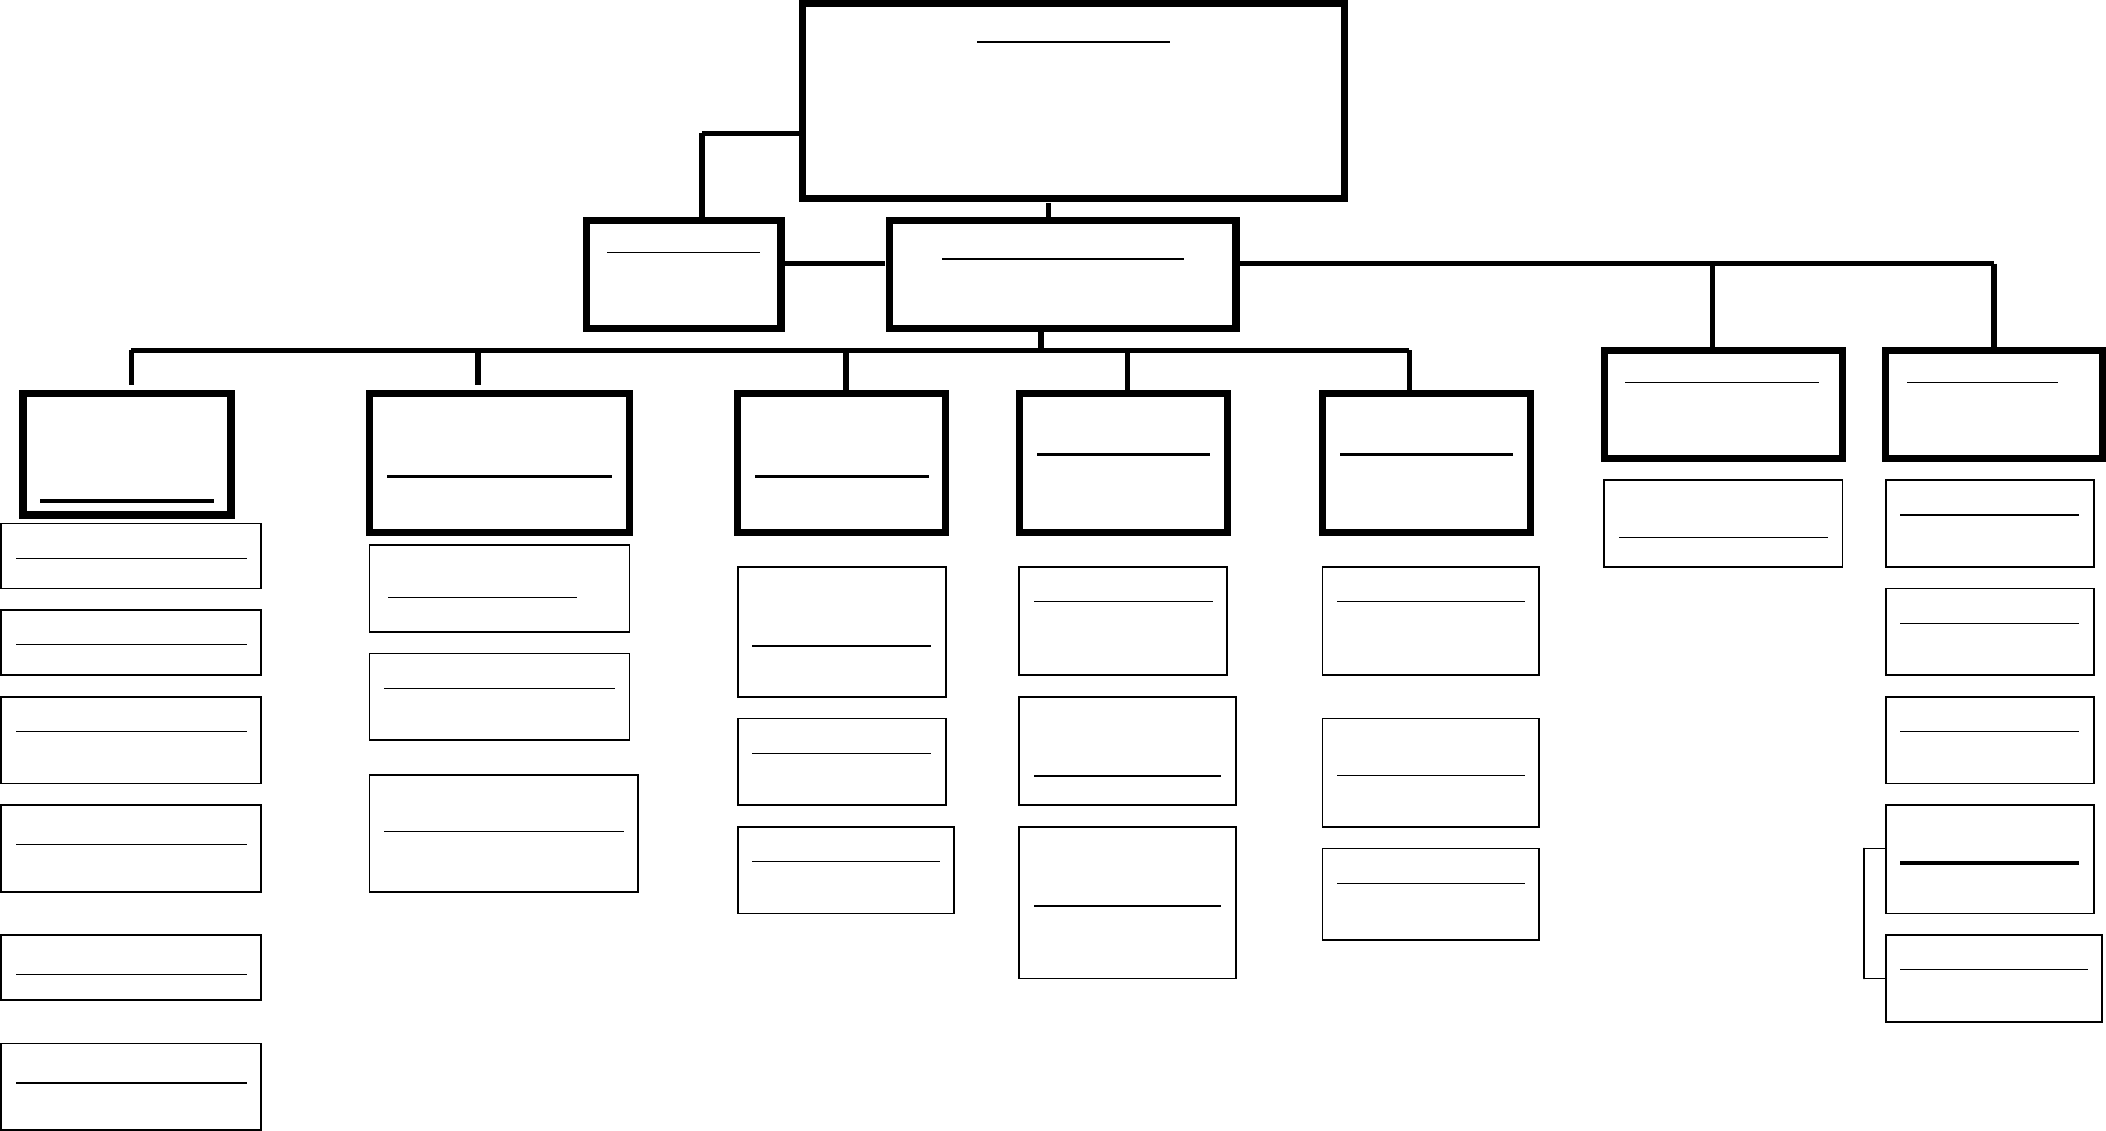 Blank organizational chart cumberland college free download for Free org chart template